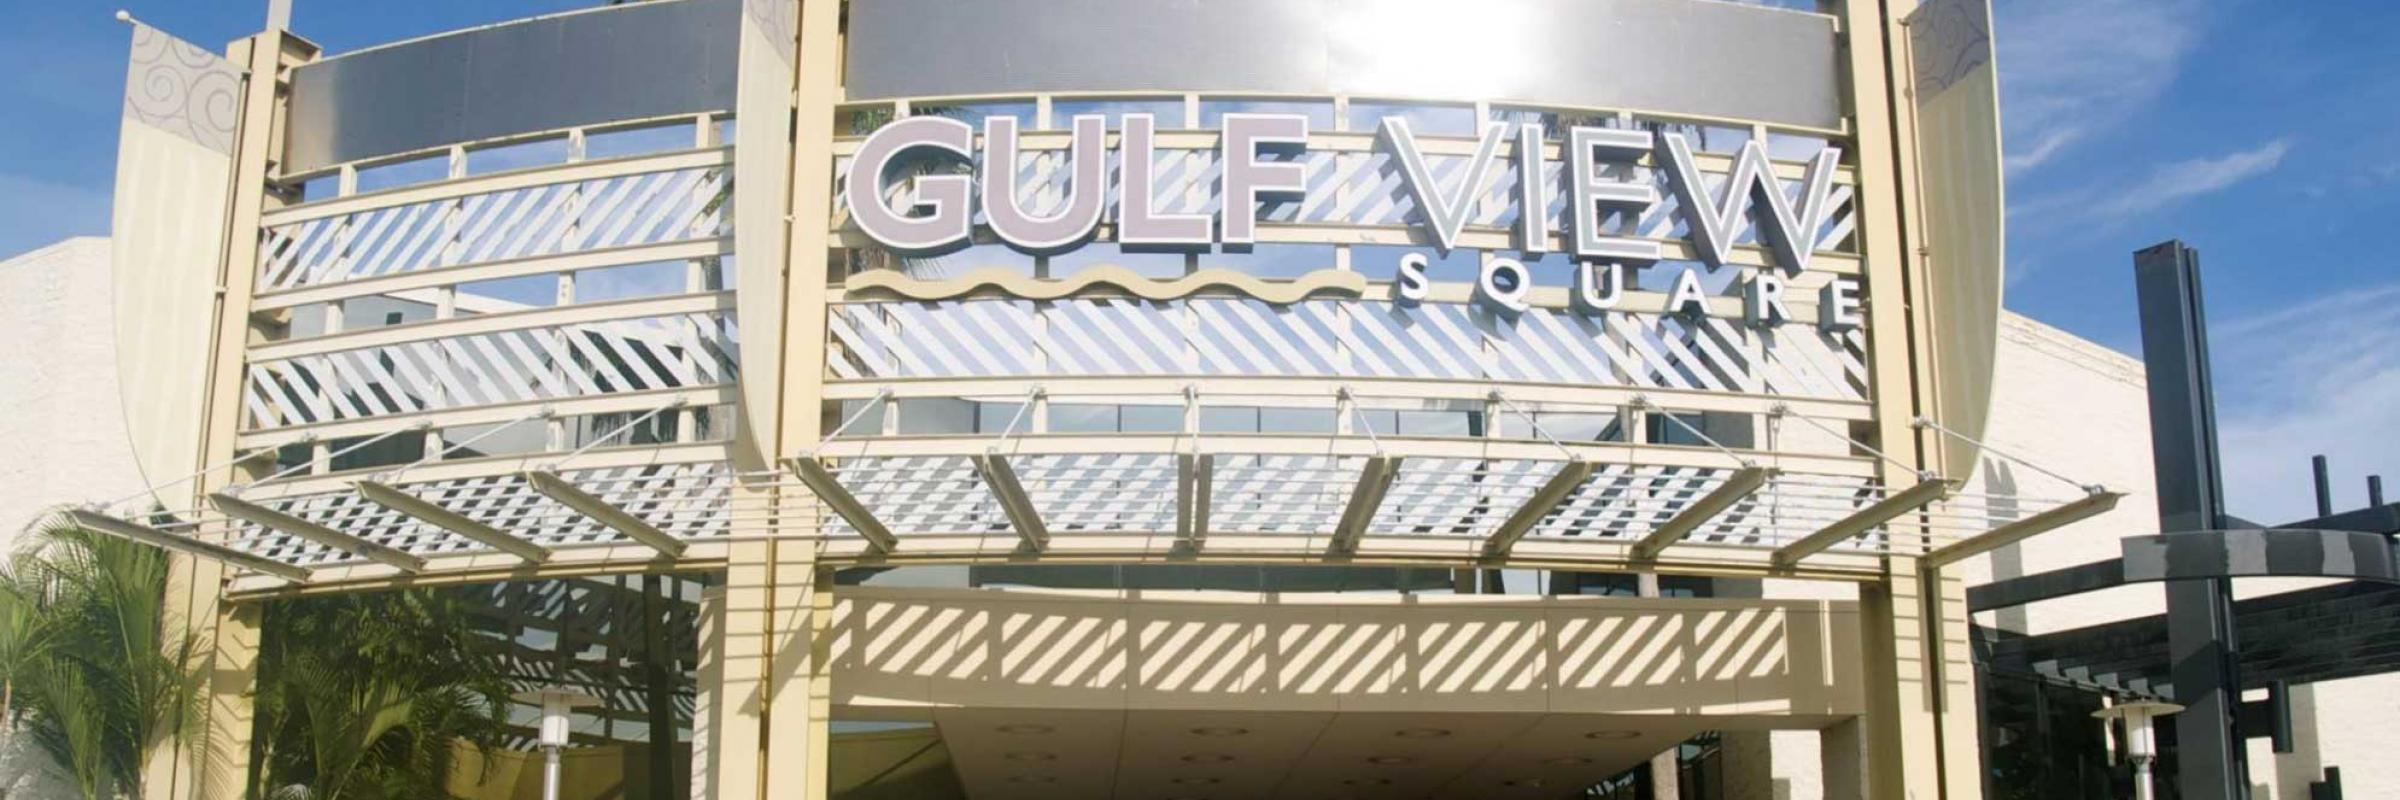 Gulf View Square